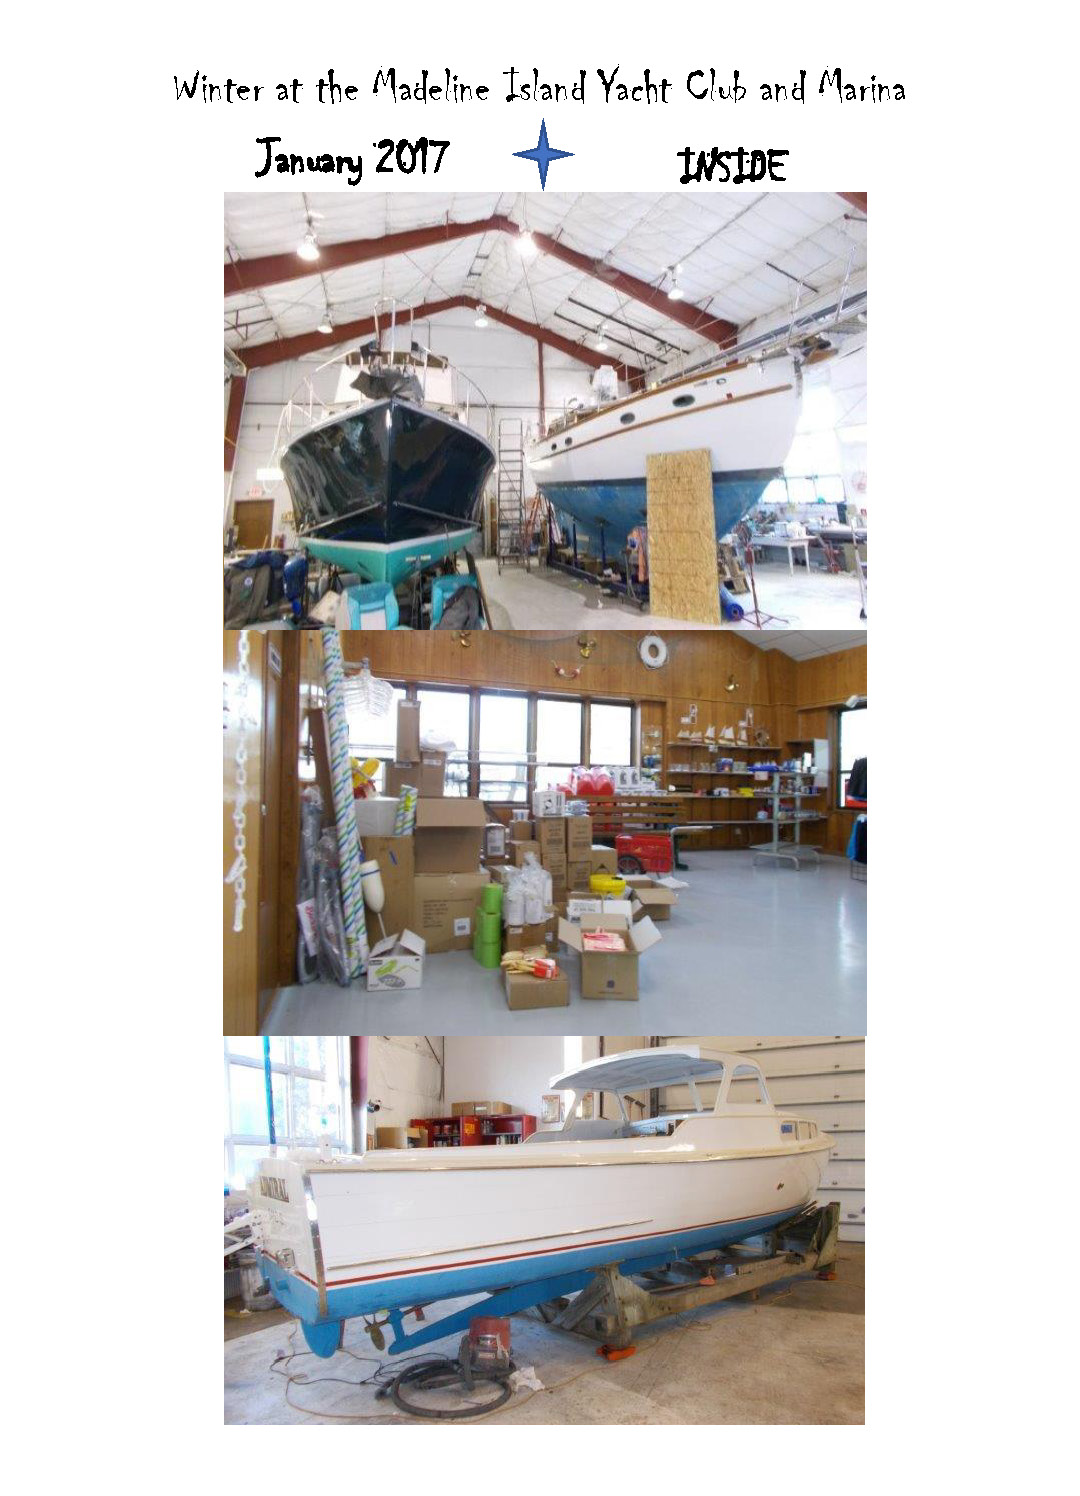 Winter at the Madeline Island Yacht Club and Marina inside.jpg